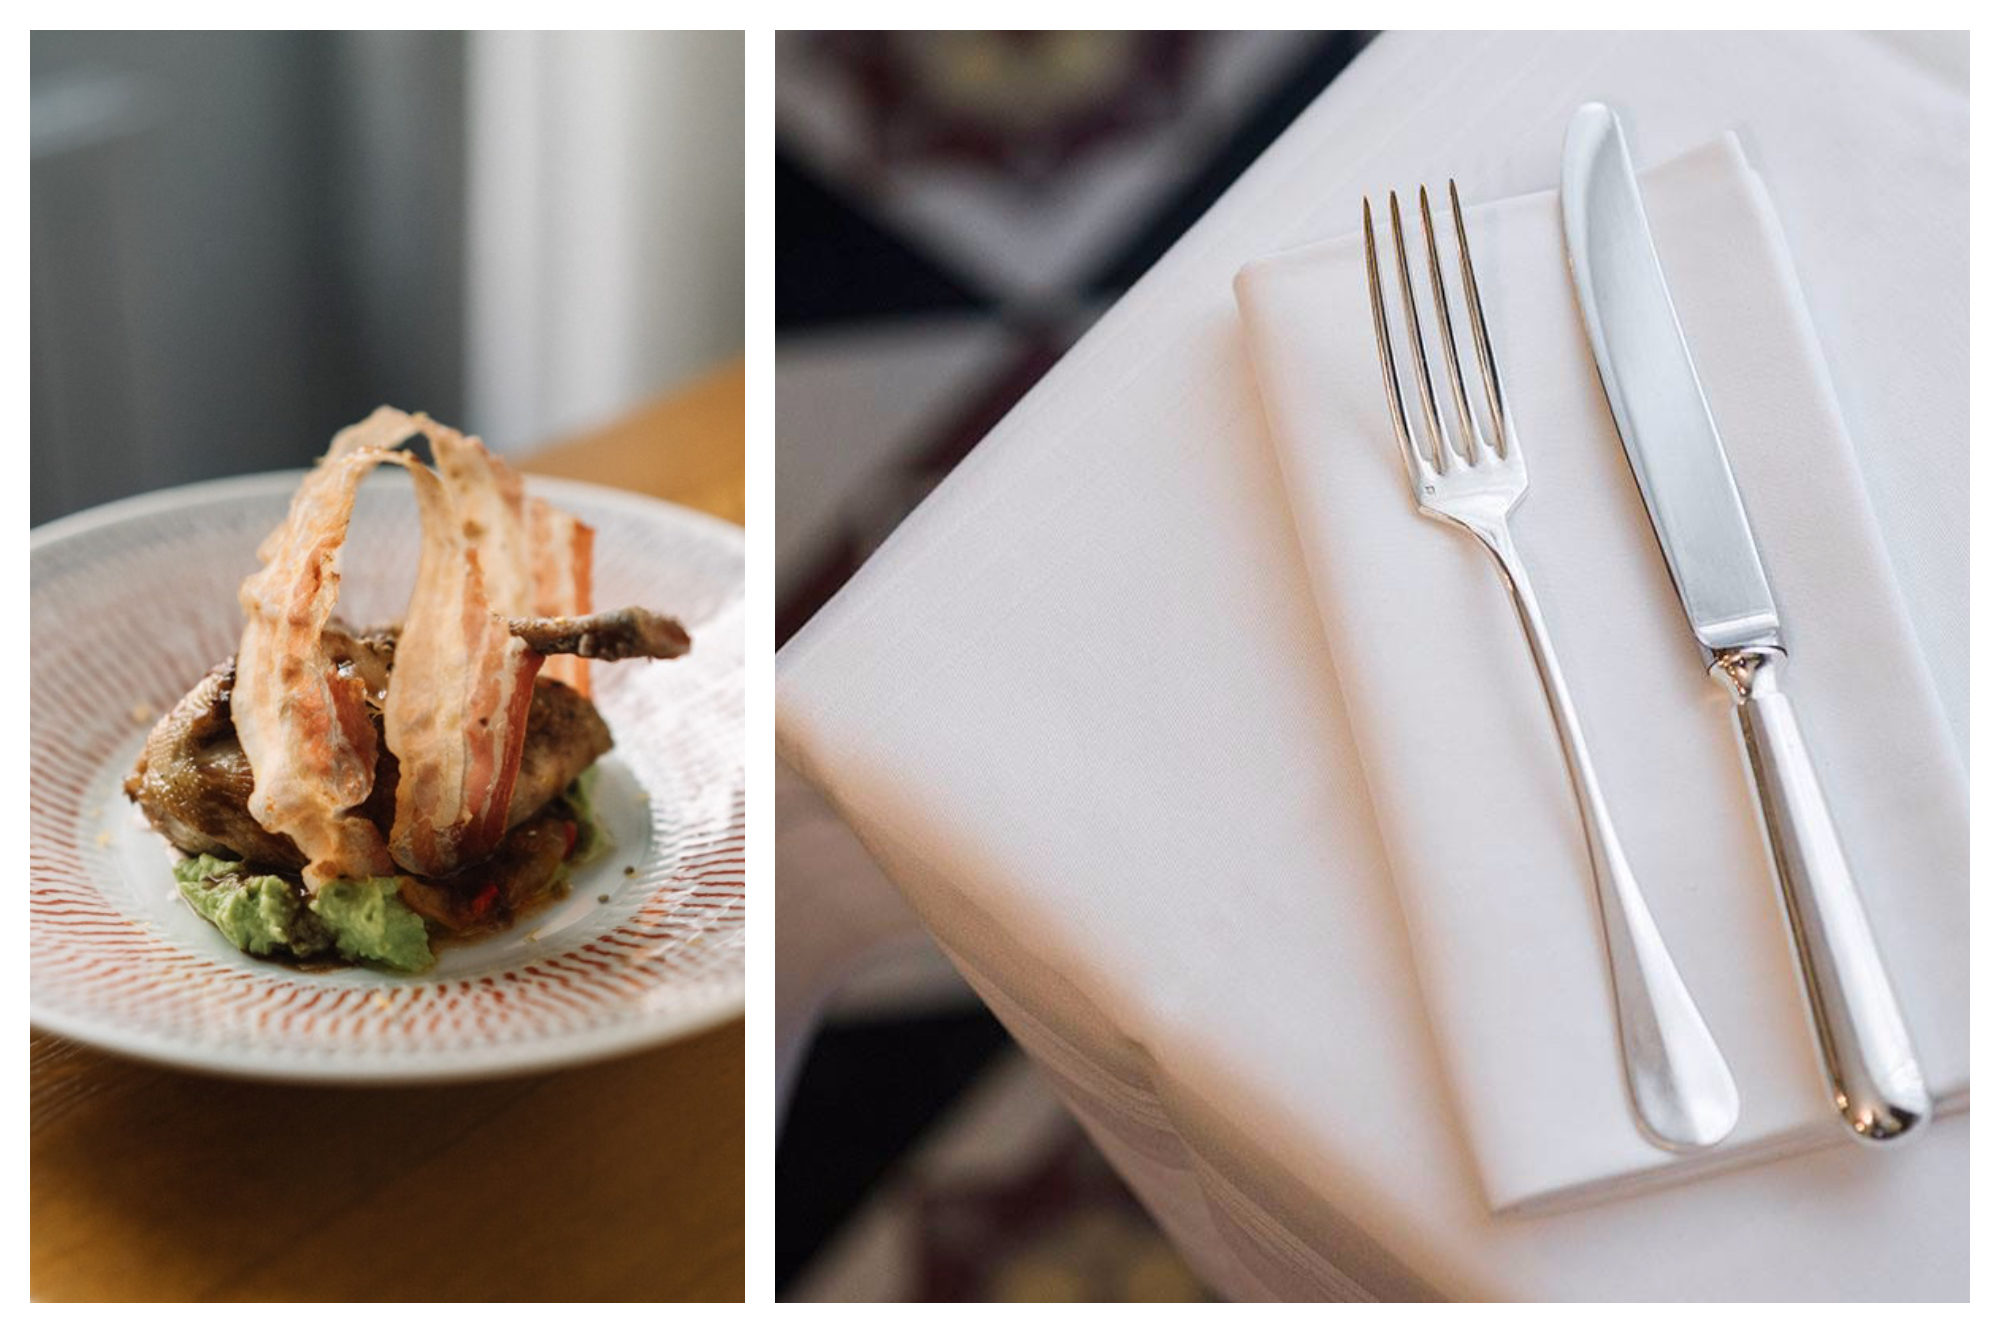 A signature dish of duck confit (left) and silver cutlery laid out on crisp white tablecloth (right) at Bistro Belhara near the Eiffel Tower.